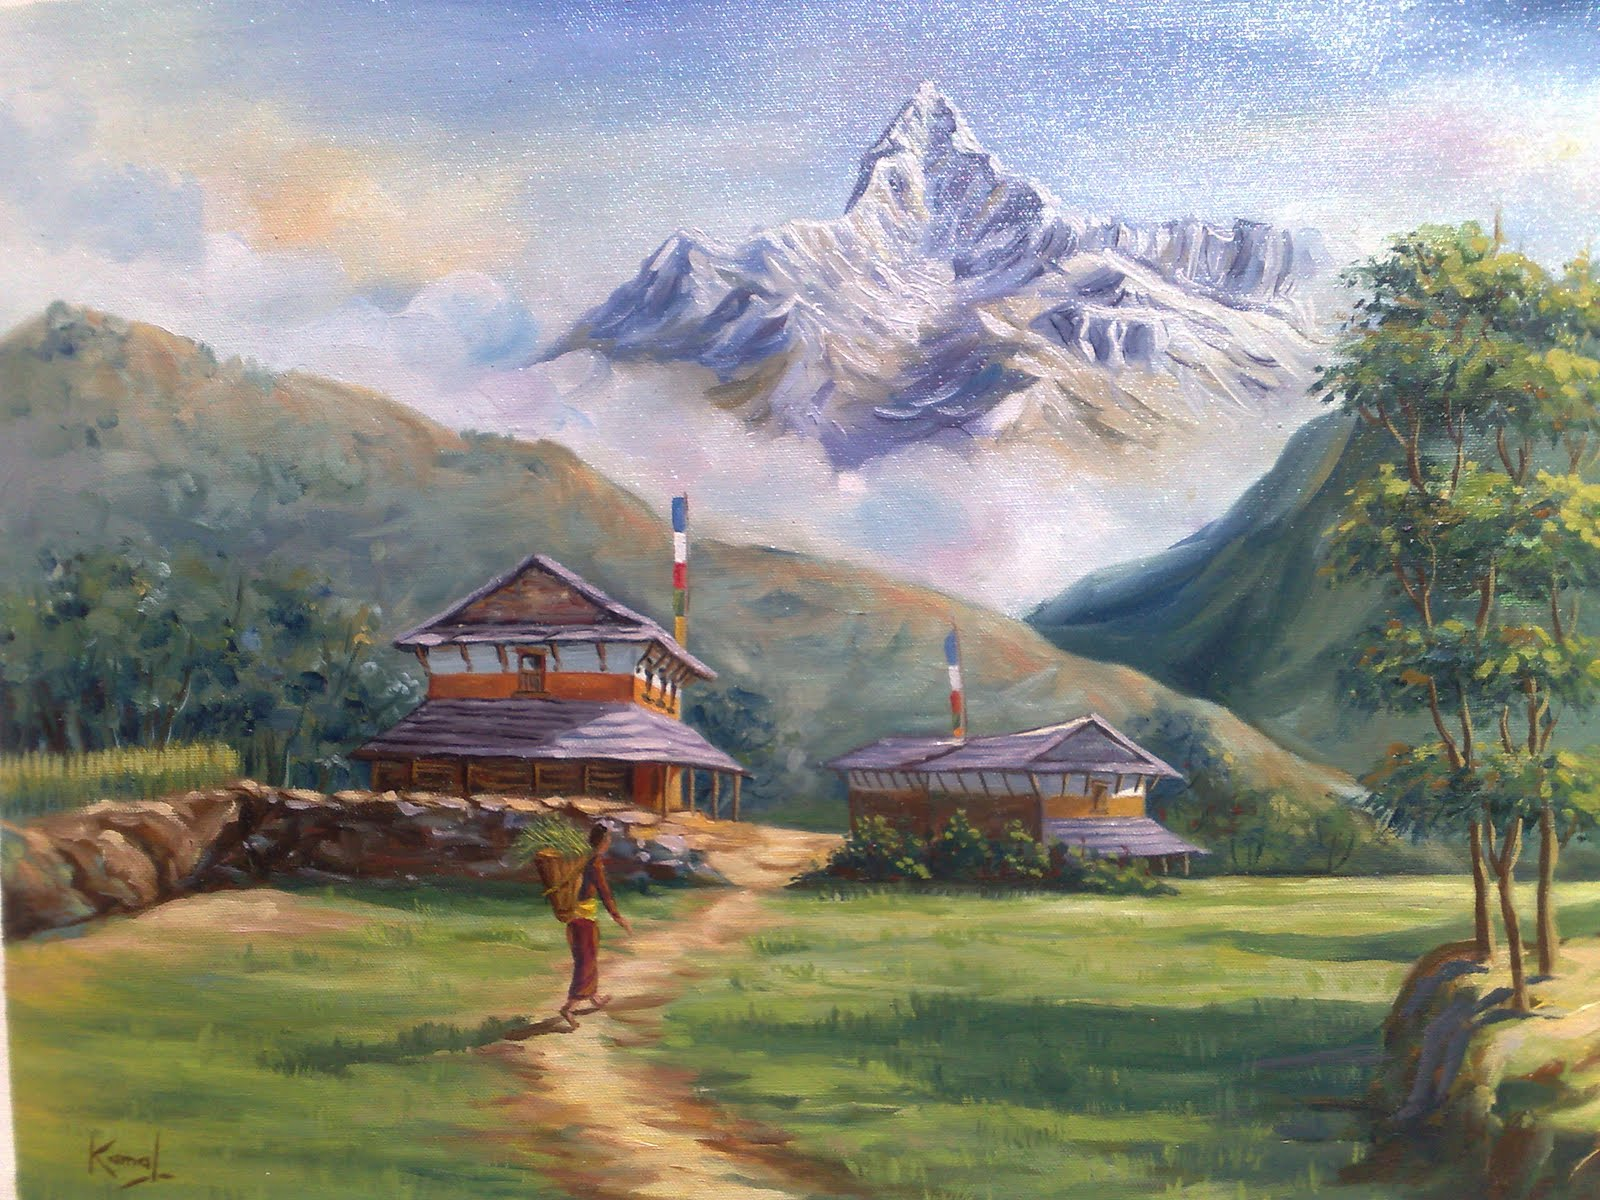 Nepal Watercolor At Getdrawings Com Free For Personal Use Nepal